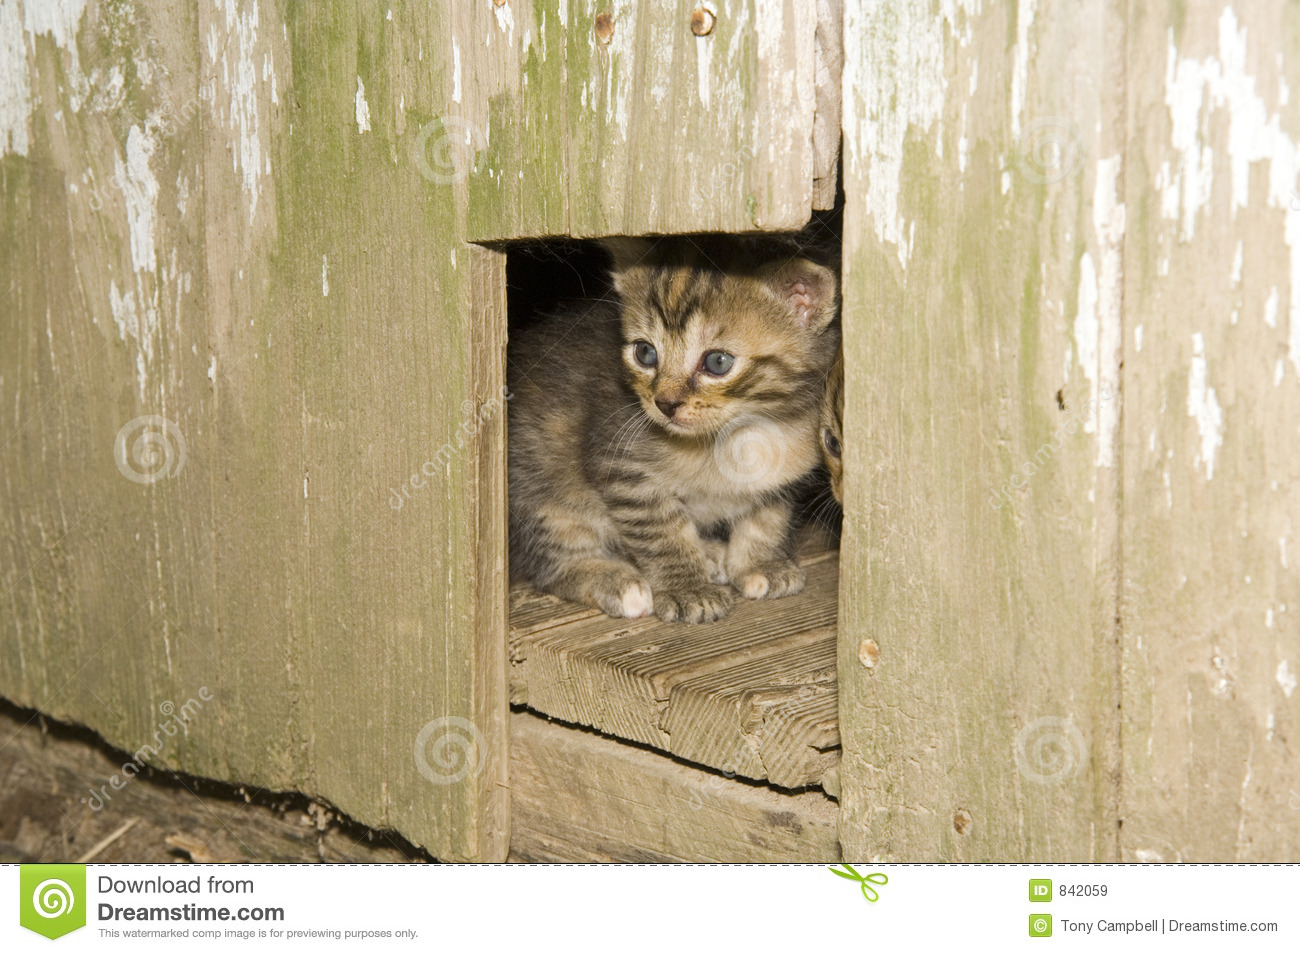 Kitten peeking out of a hole in a wooden door